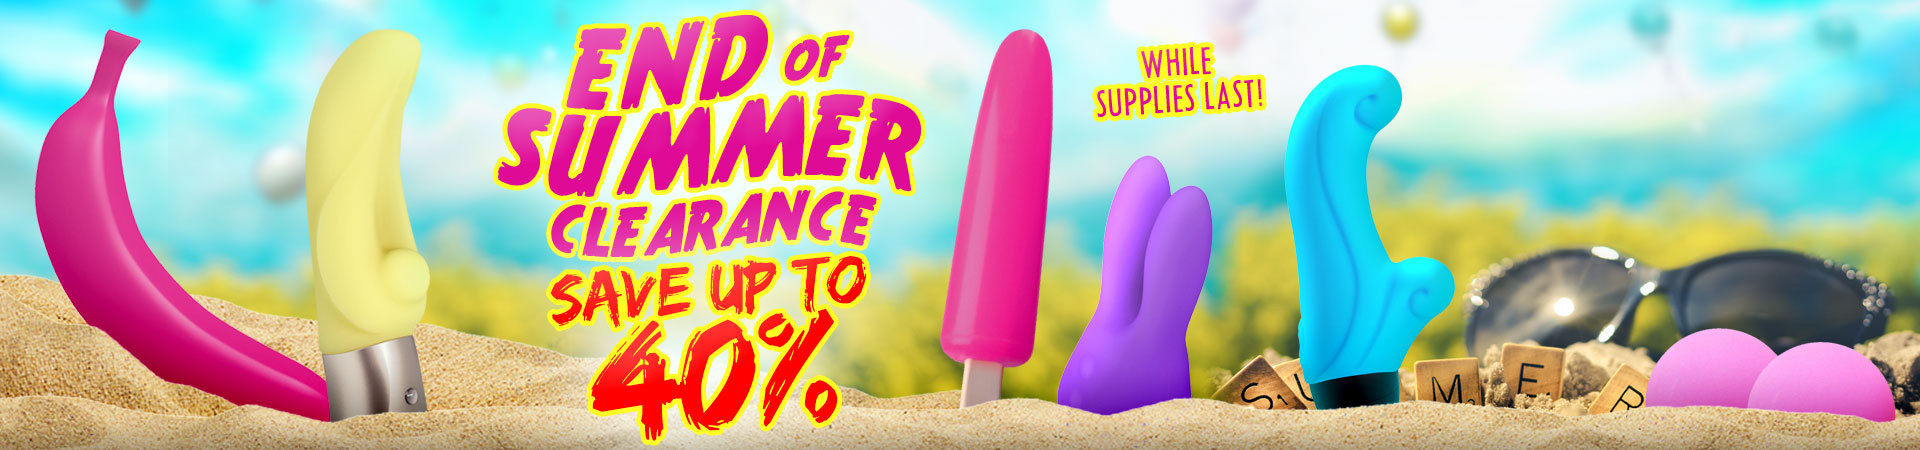 It's SheVibe's End Of Summer Clearance Sale! - Save Up To 40% On Select Items While Supplies Last!